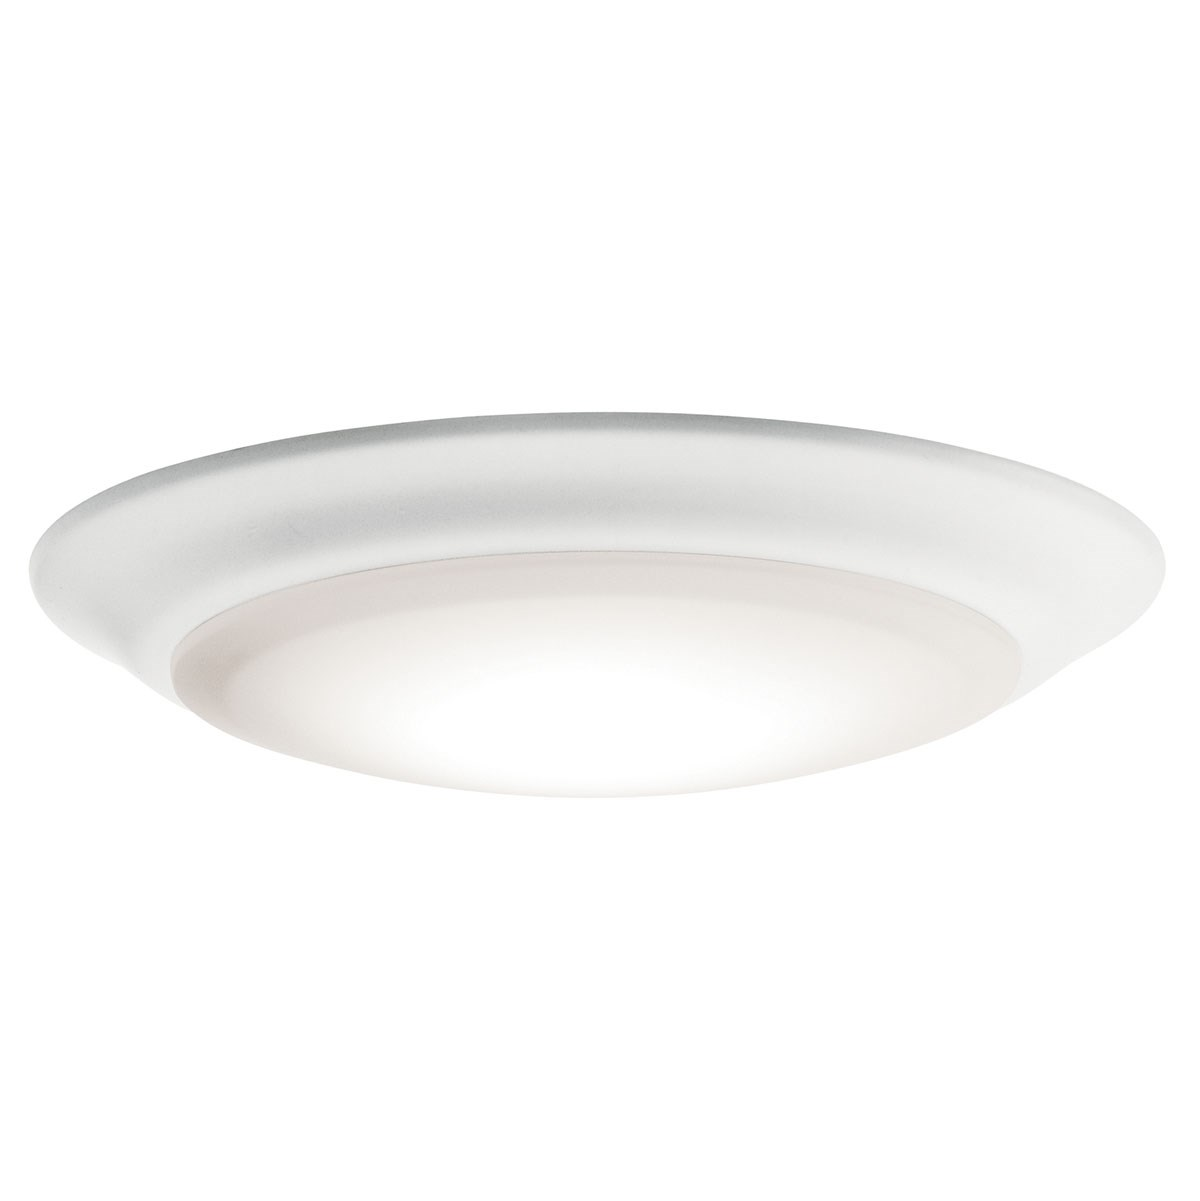 Downlight Gen II 3000K T24 LED Flush Mount White